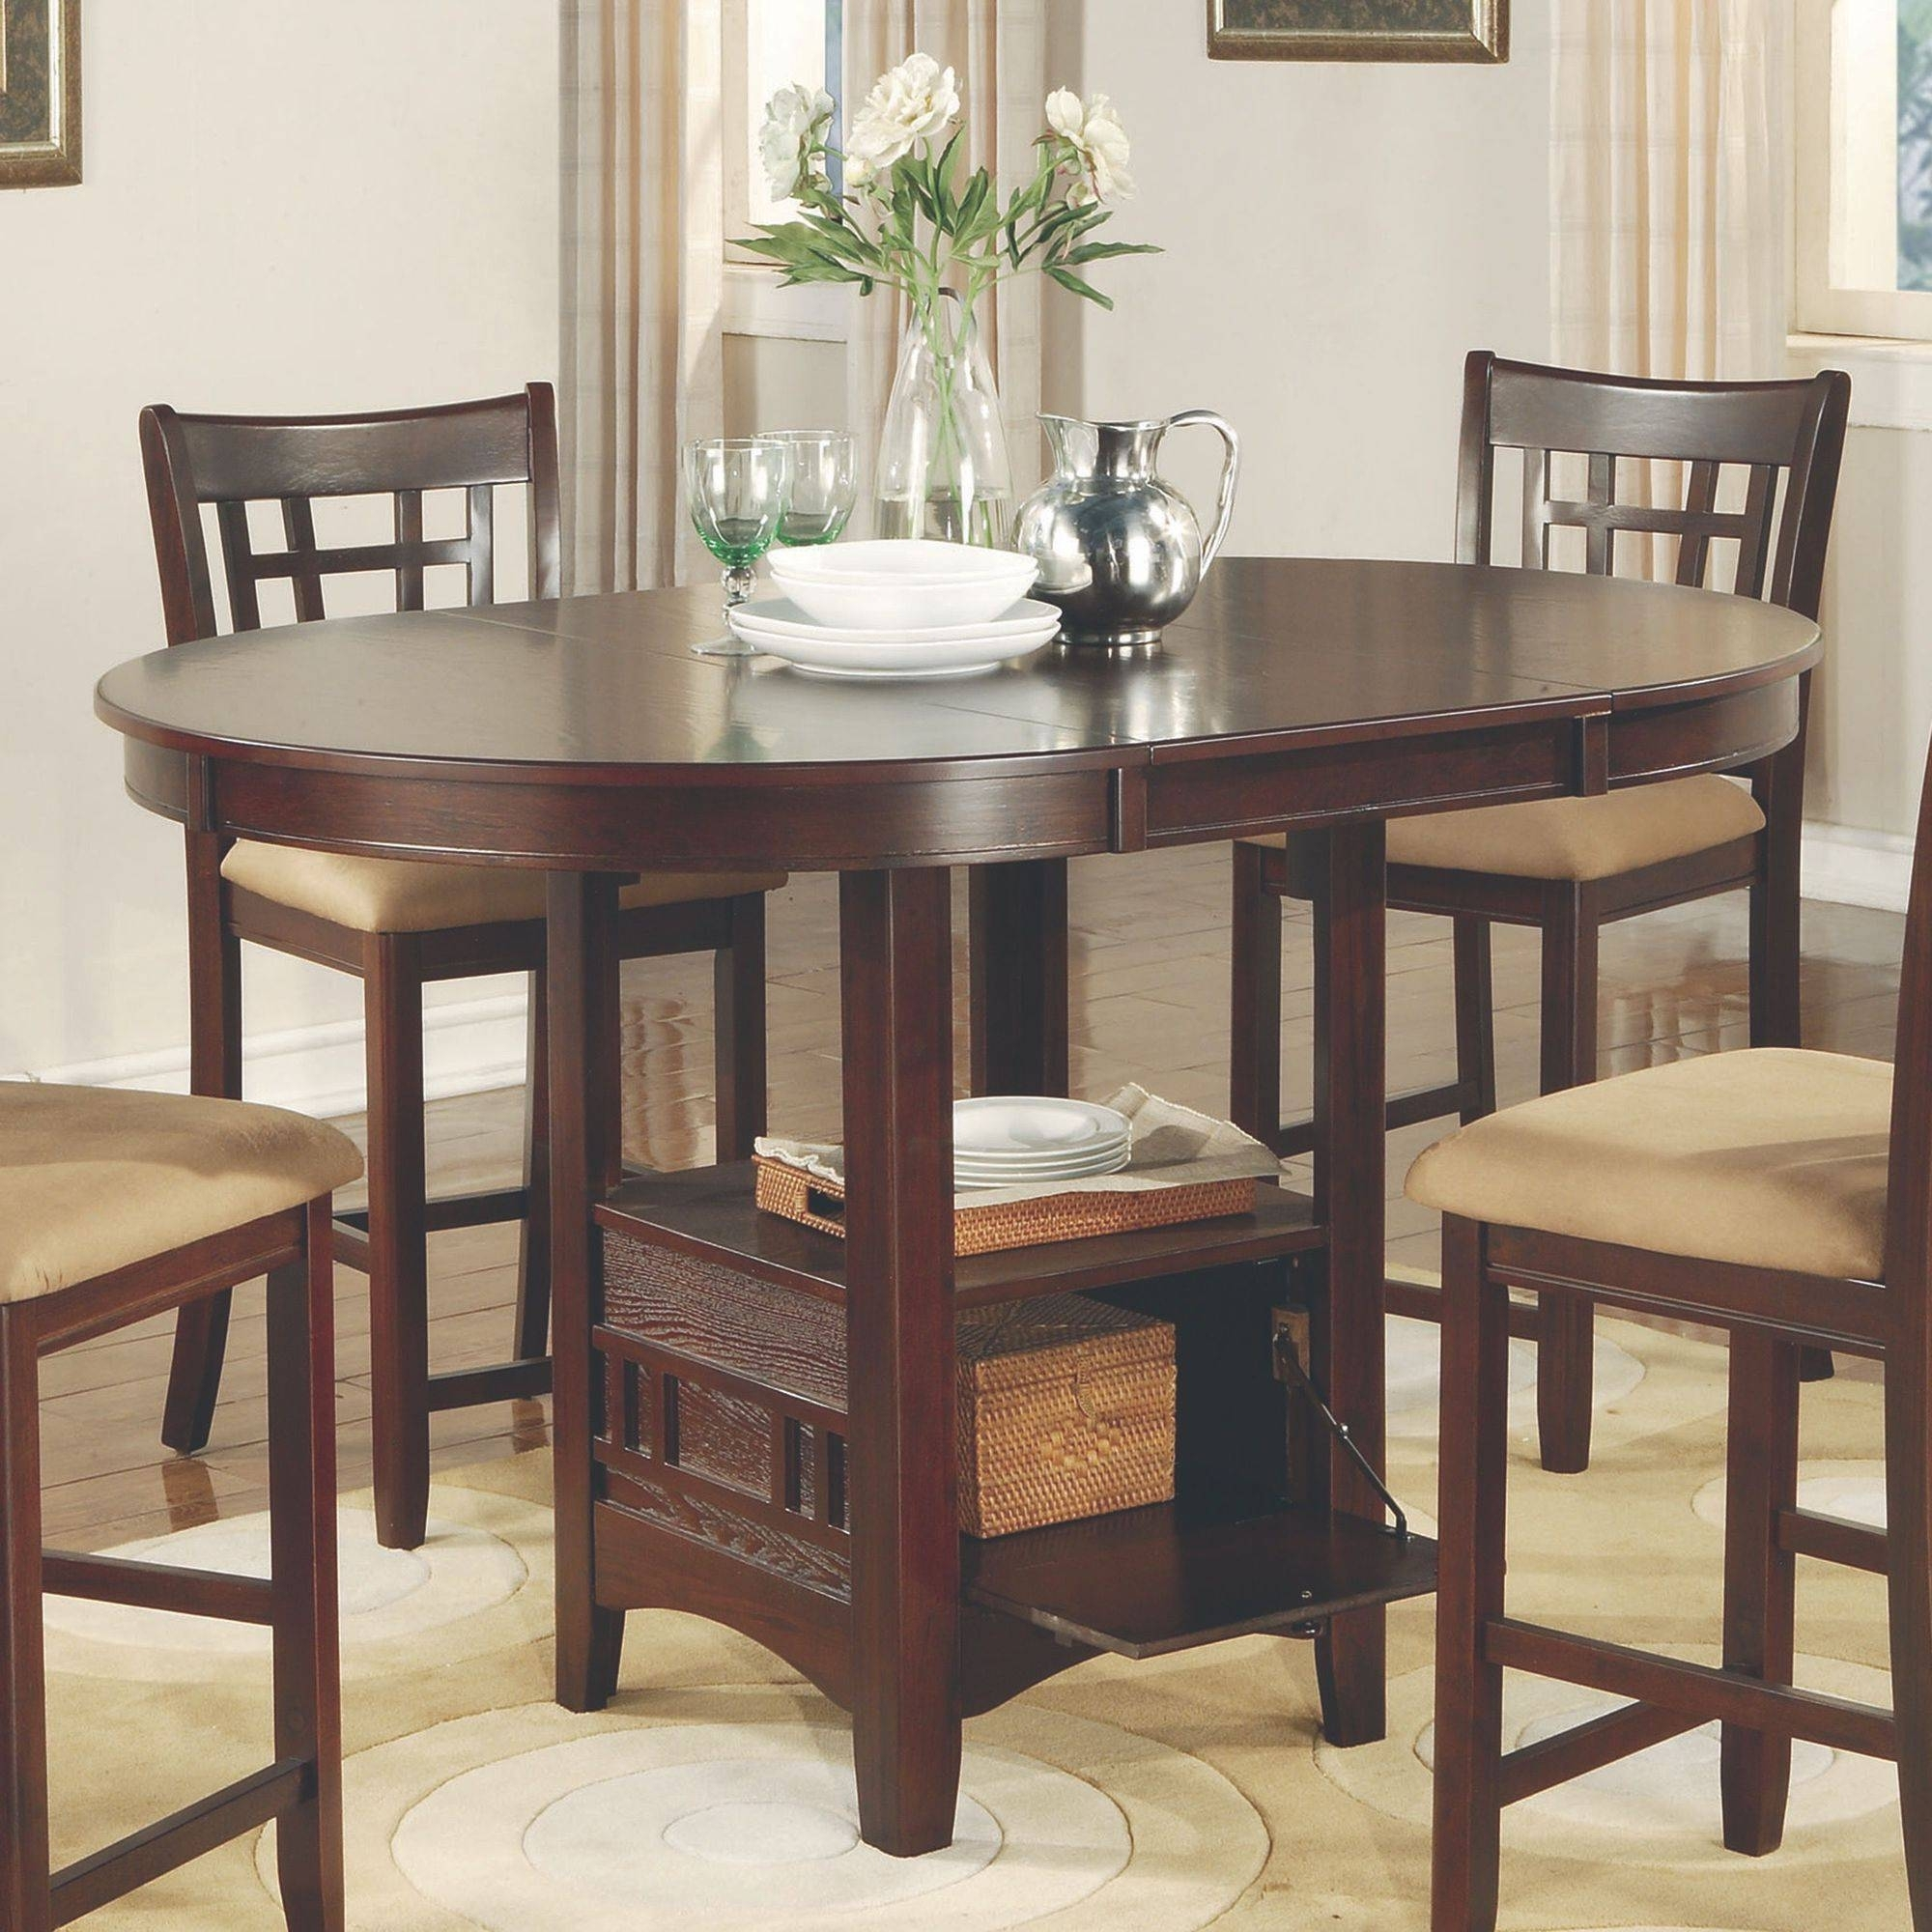 Acme Gaucho 5 Piece Counter Height Dining Set, Multiple Colors For Latest Market 5 Piece Counter Sets (Image 5 of 20)